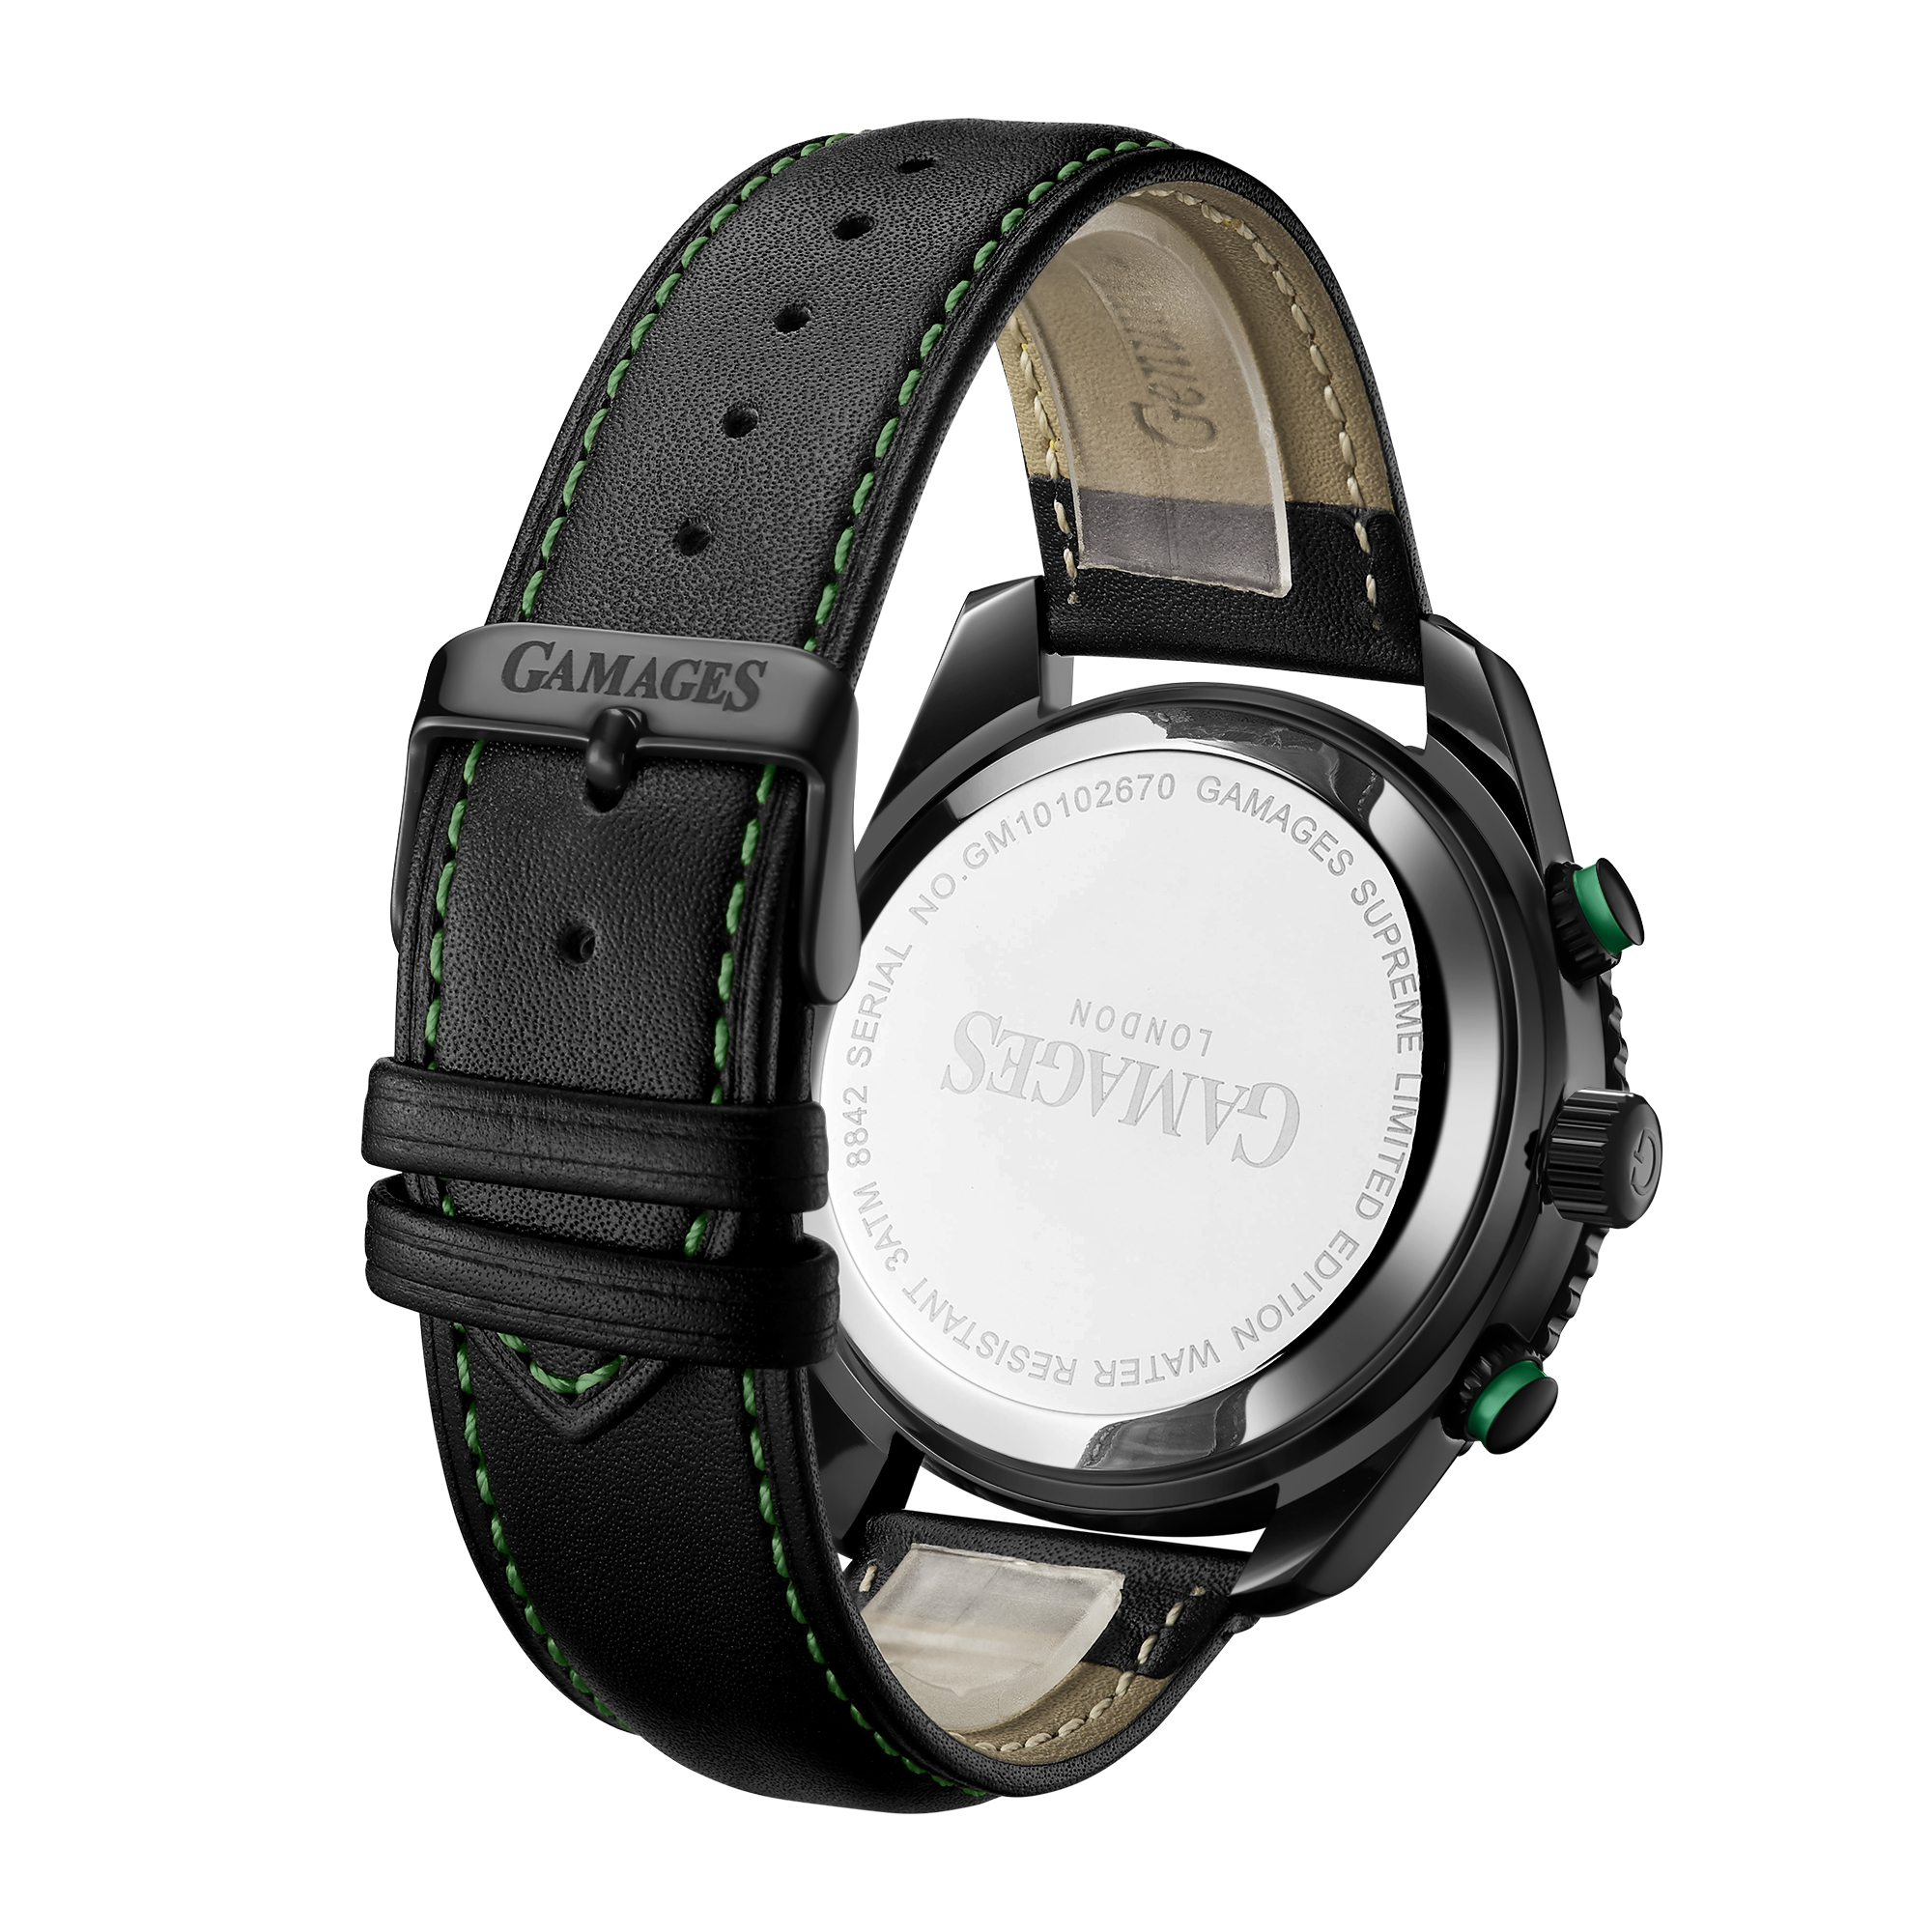 Limited Edition Hand Assembled Gamages Supreme Automatic Green – 5 Year Warranty & Free Delivery - Image 3 of 6